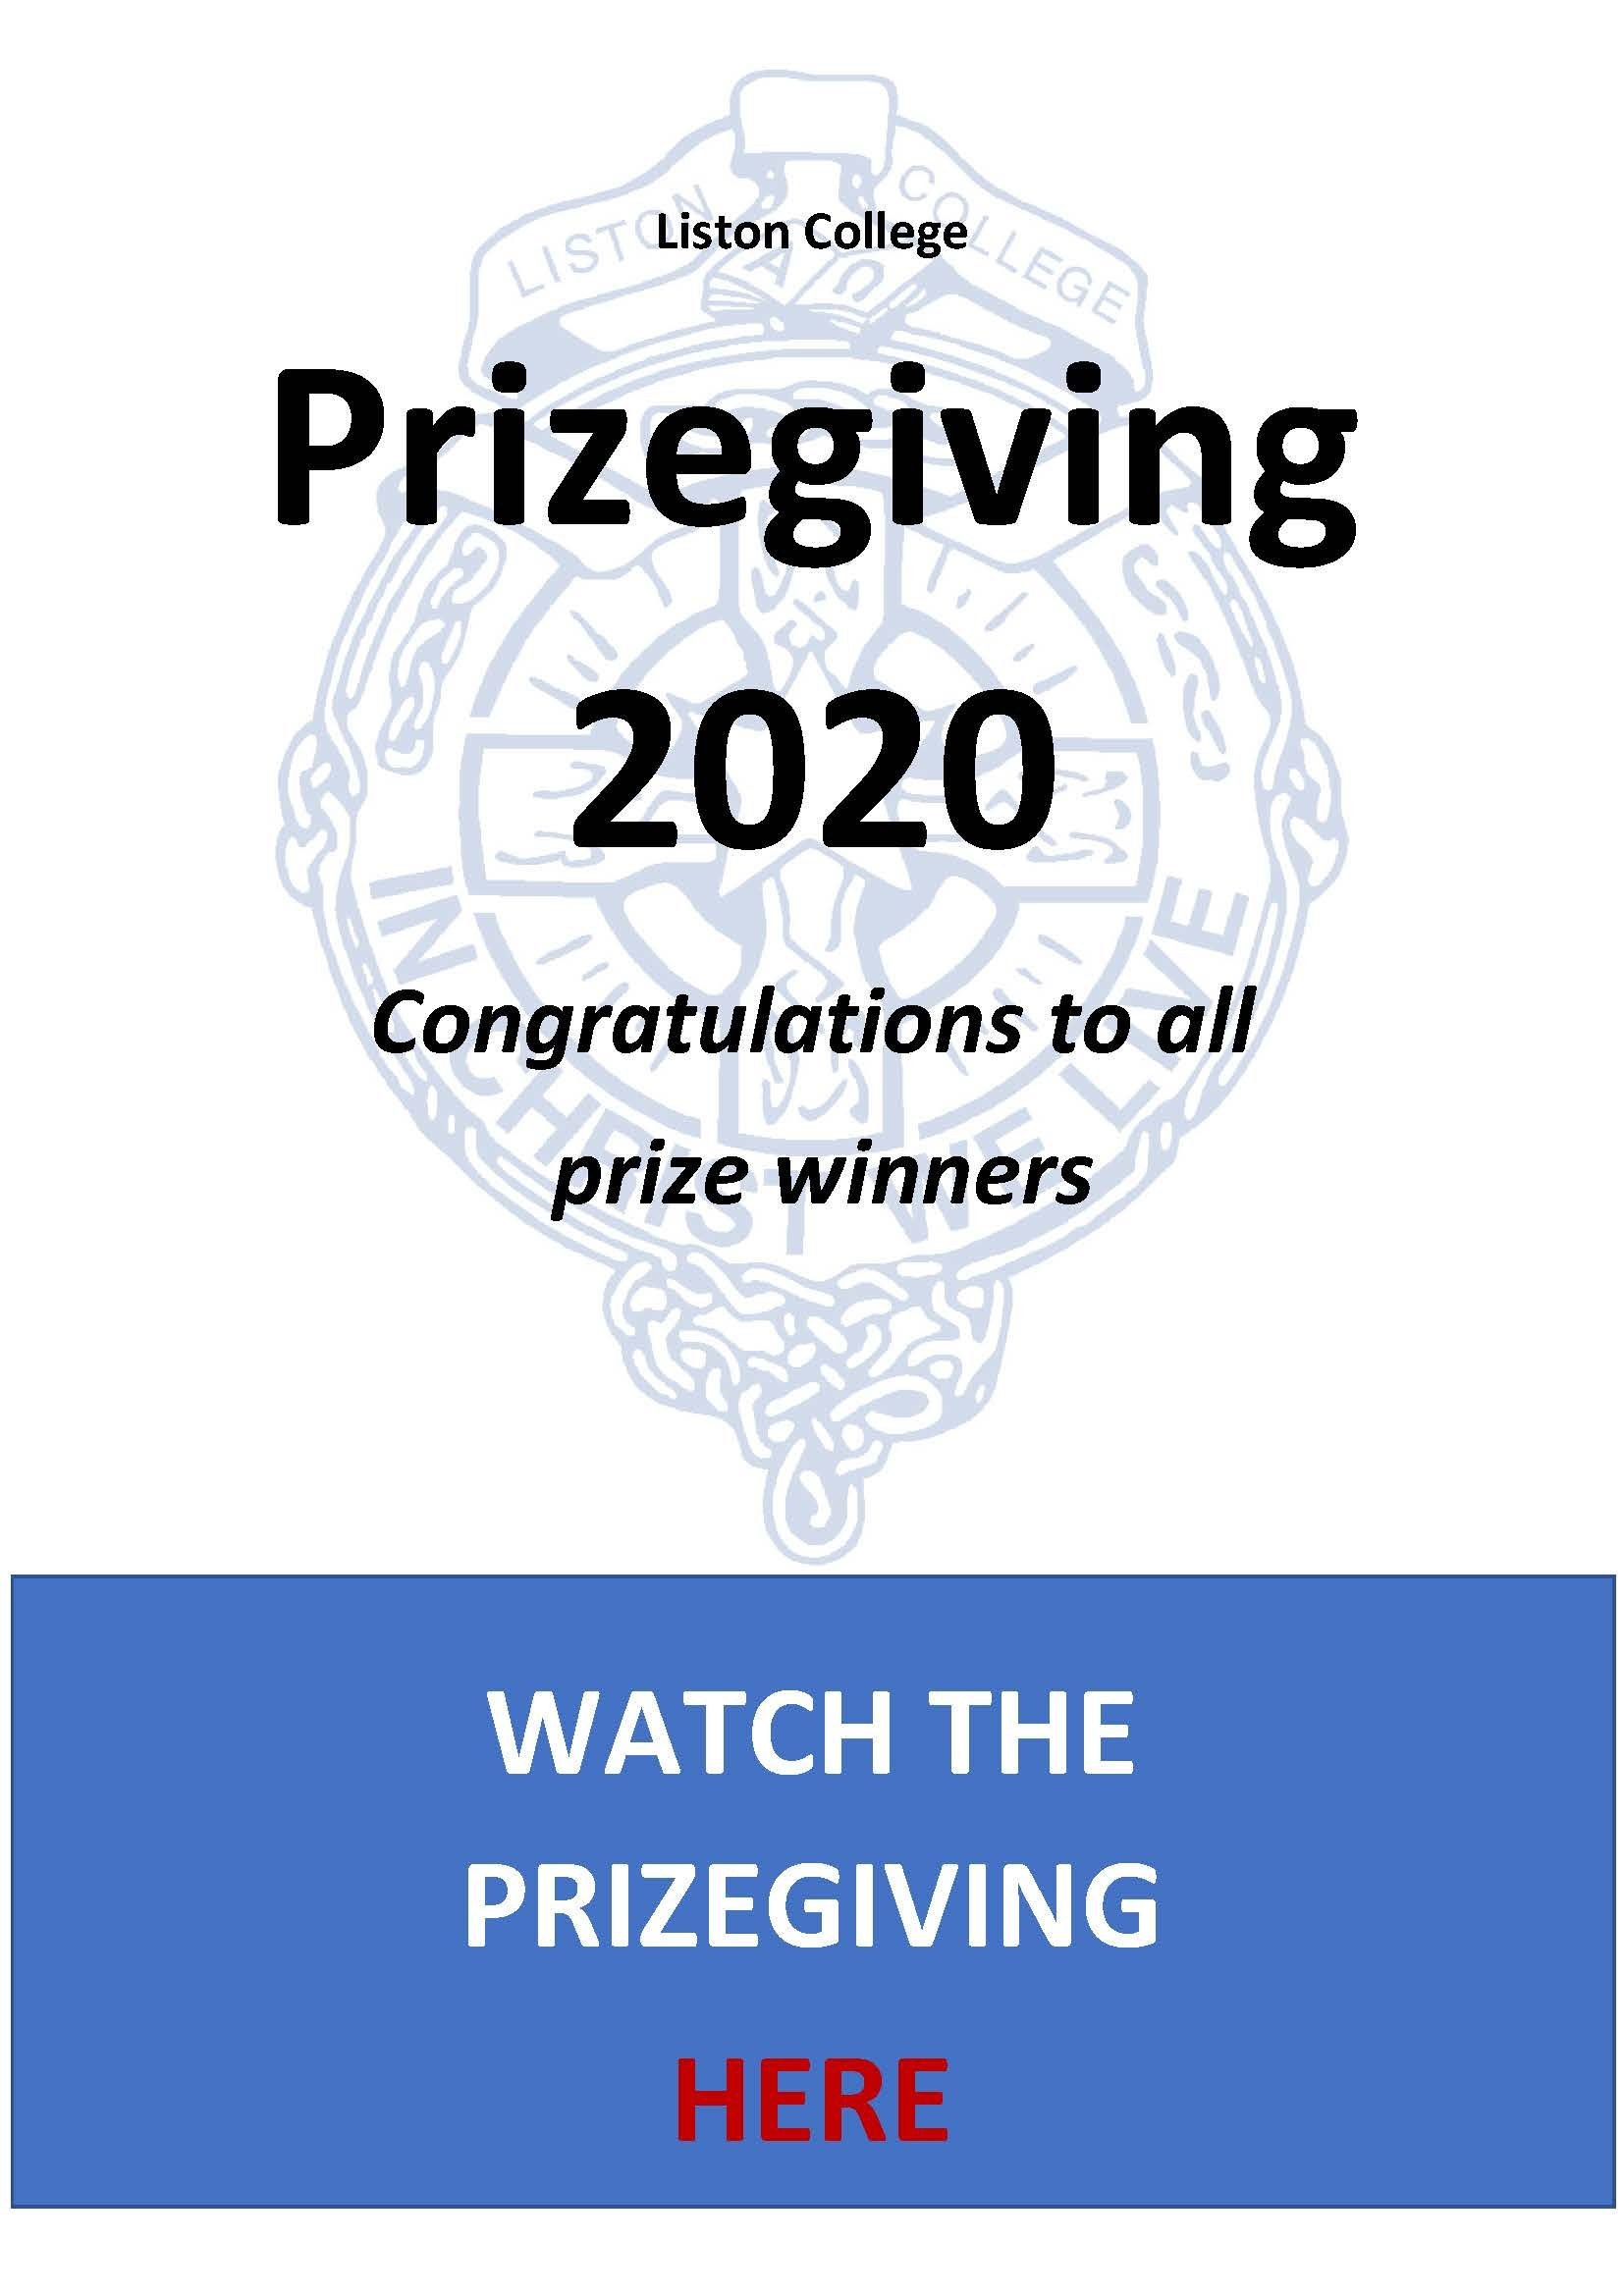 Prizegiving 2020